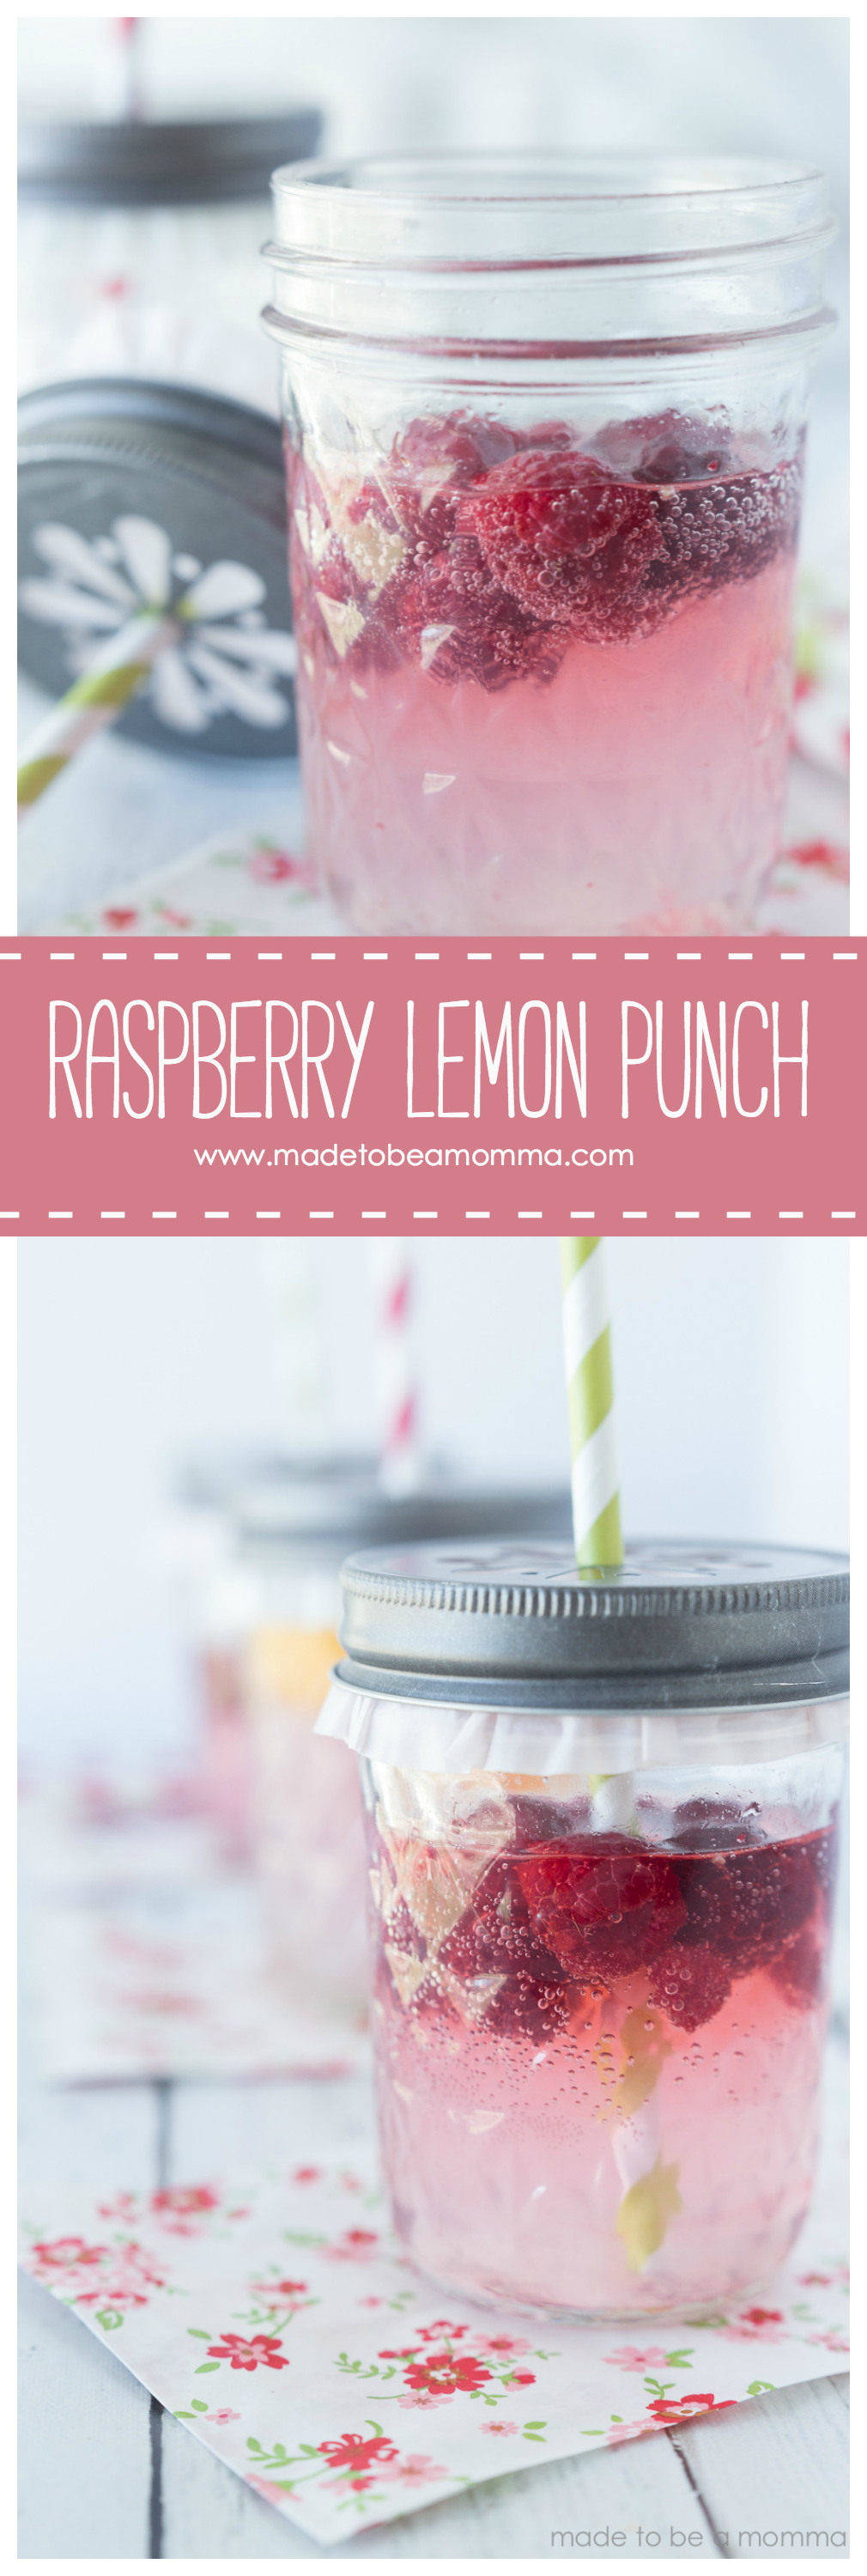 Raspberry Lemon Punch